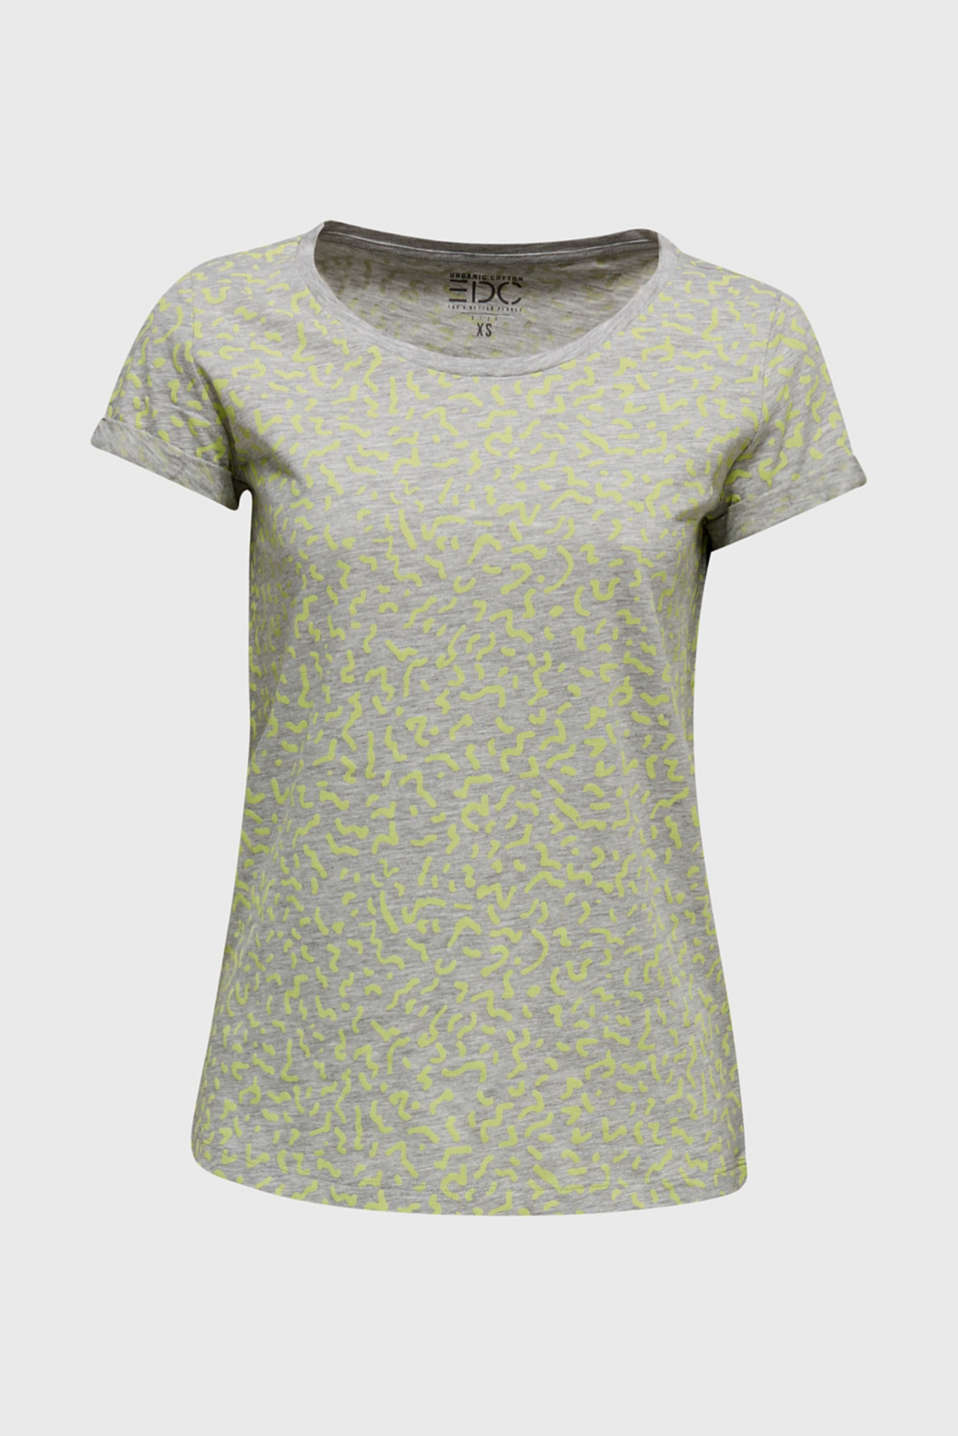 NEON melange T-shirt with print, LIGHT GREY 5, detail image number 7